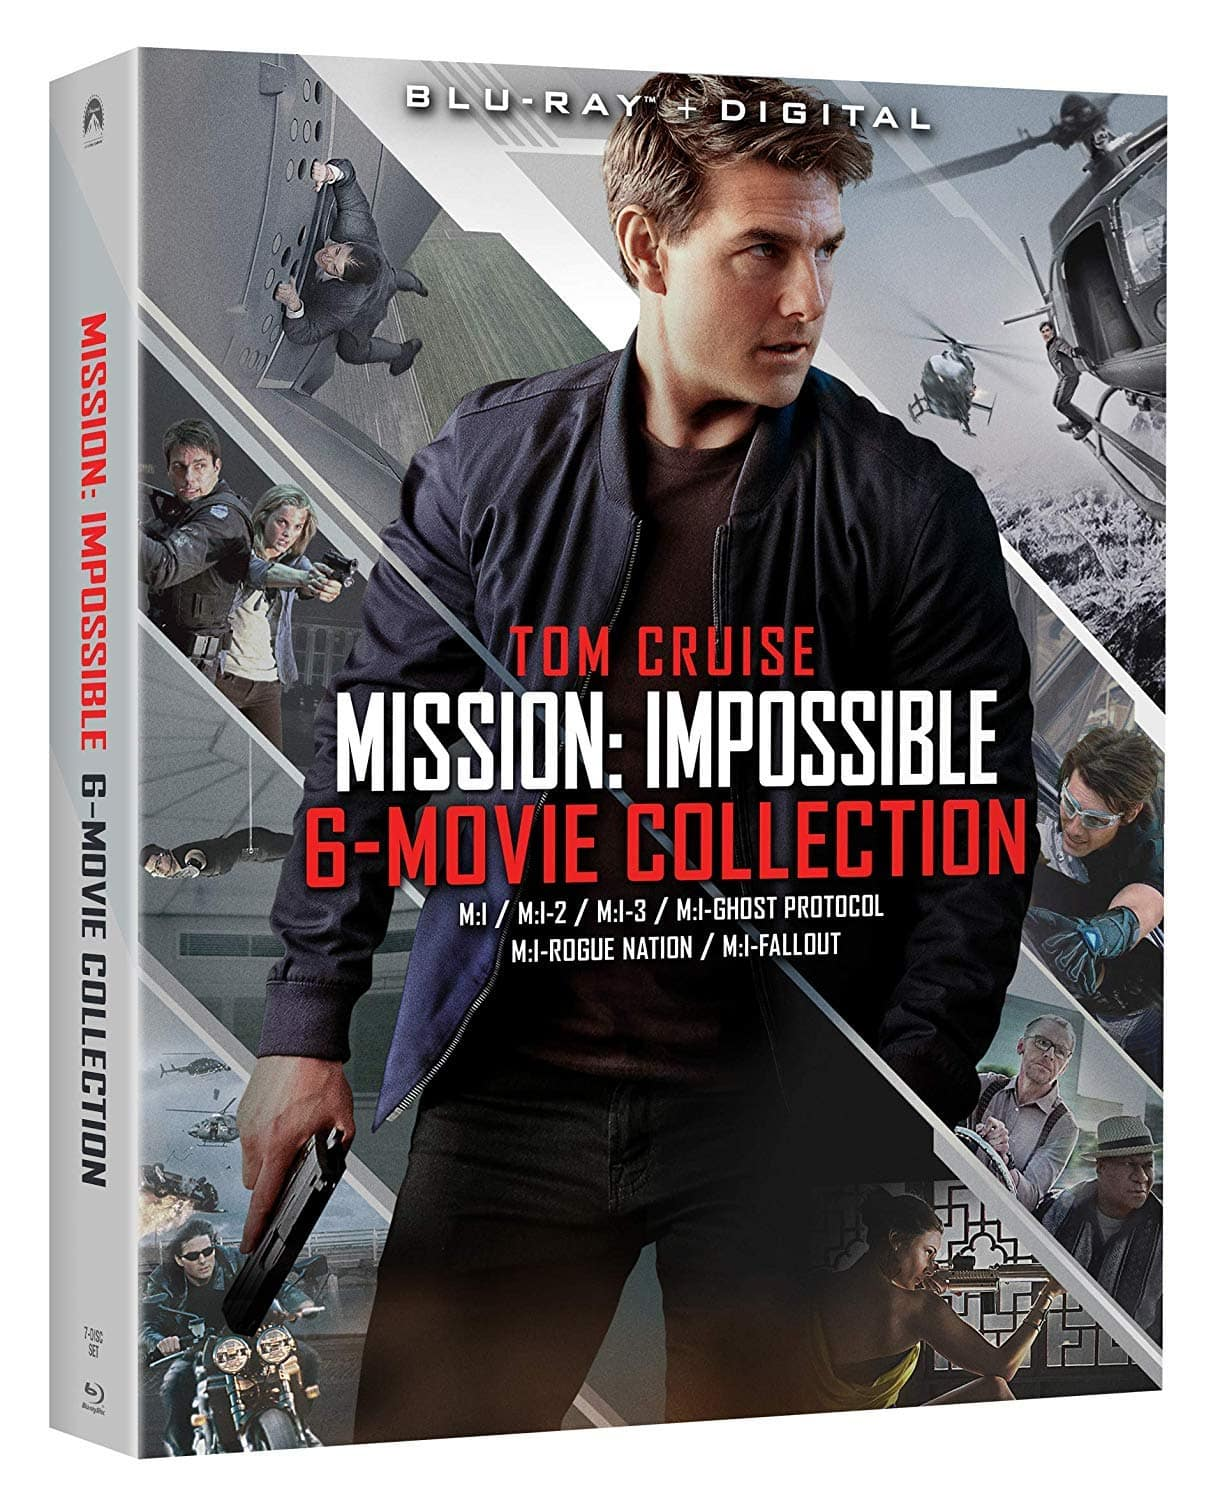 Mission: Impossible 6-Film Collection (Blu-ray + Digital) - $12.99